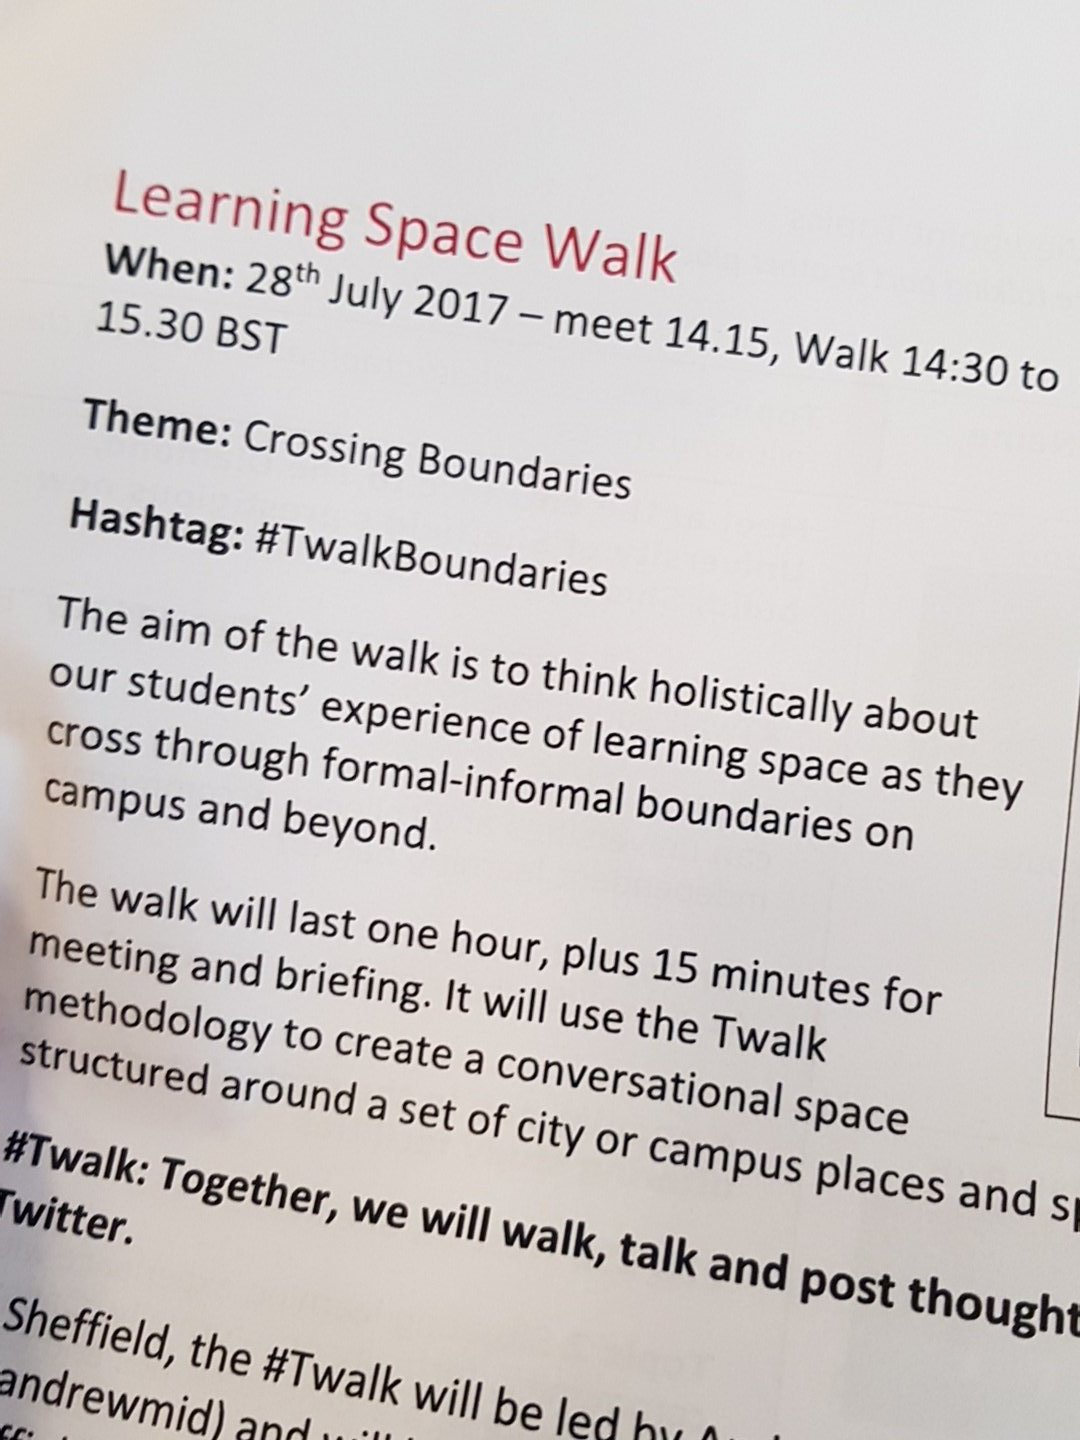 About to experience a twalk #twalkboundaries https://t.co/JIWOKaR7MD